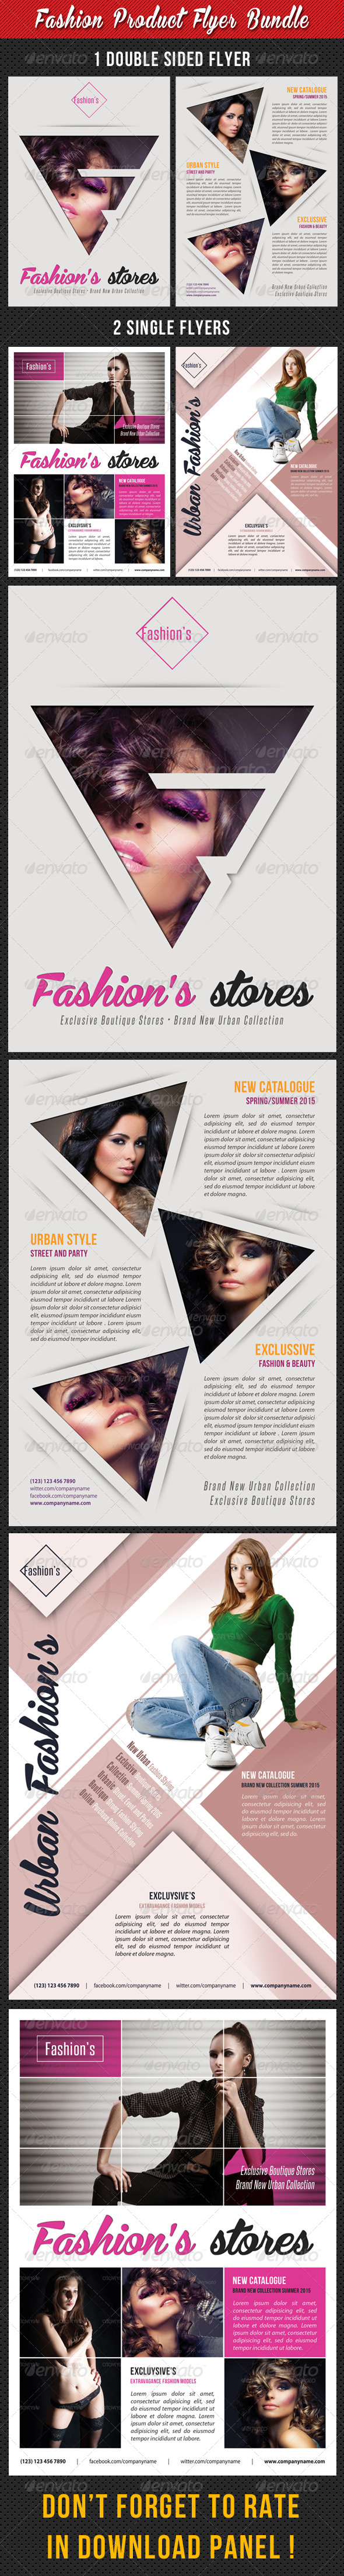 GraphicRiver 3 in 1 Fashion Product Flyer Bundle 20 7773842